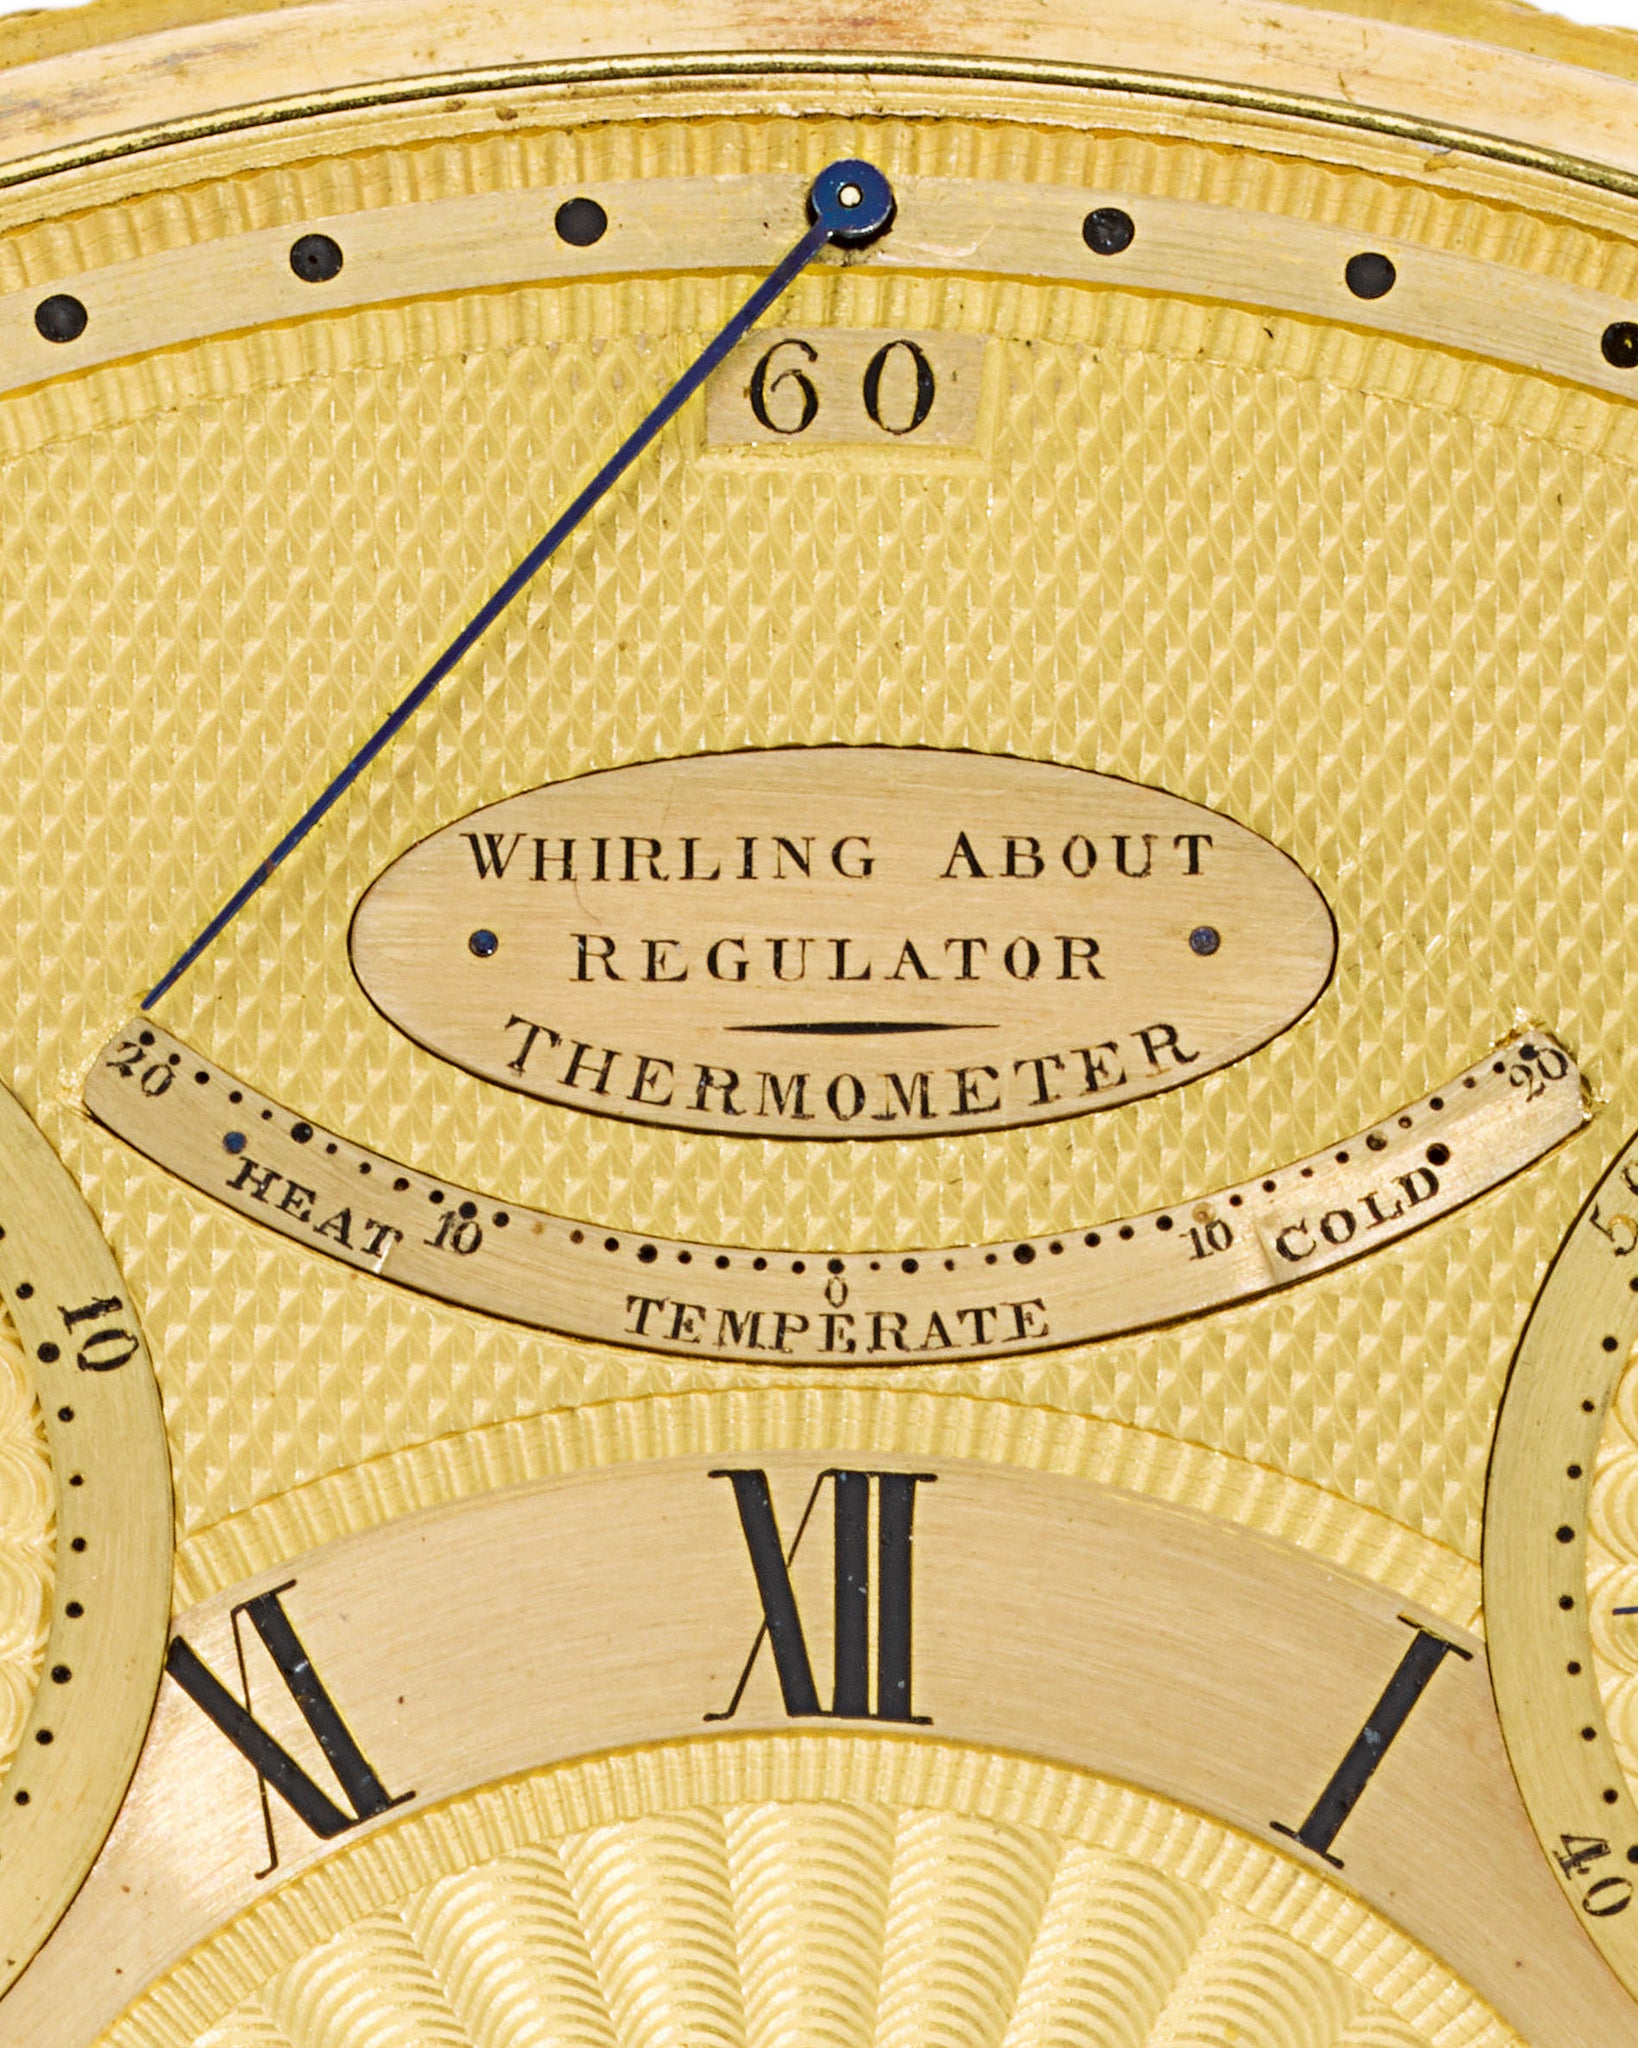 Breguet's translation of the word tourbillon on the dial of King George III's watch